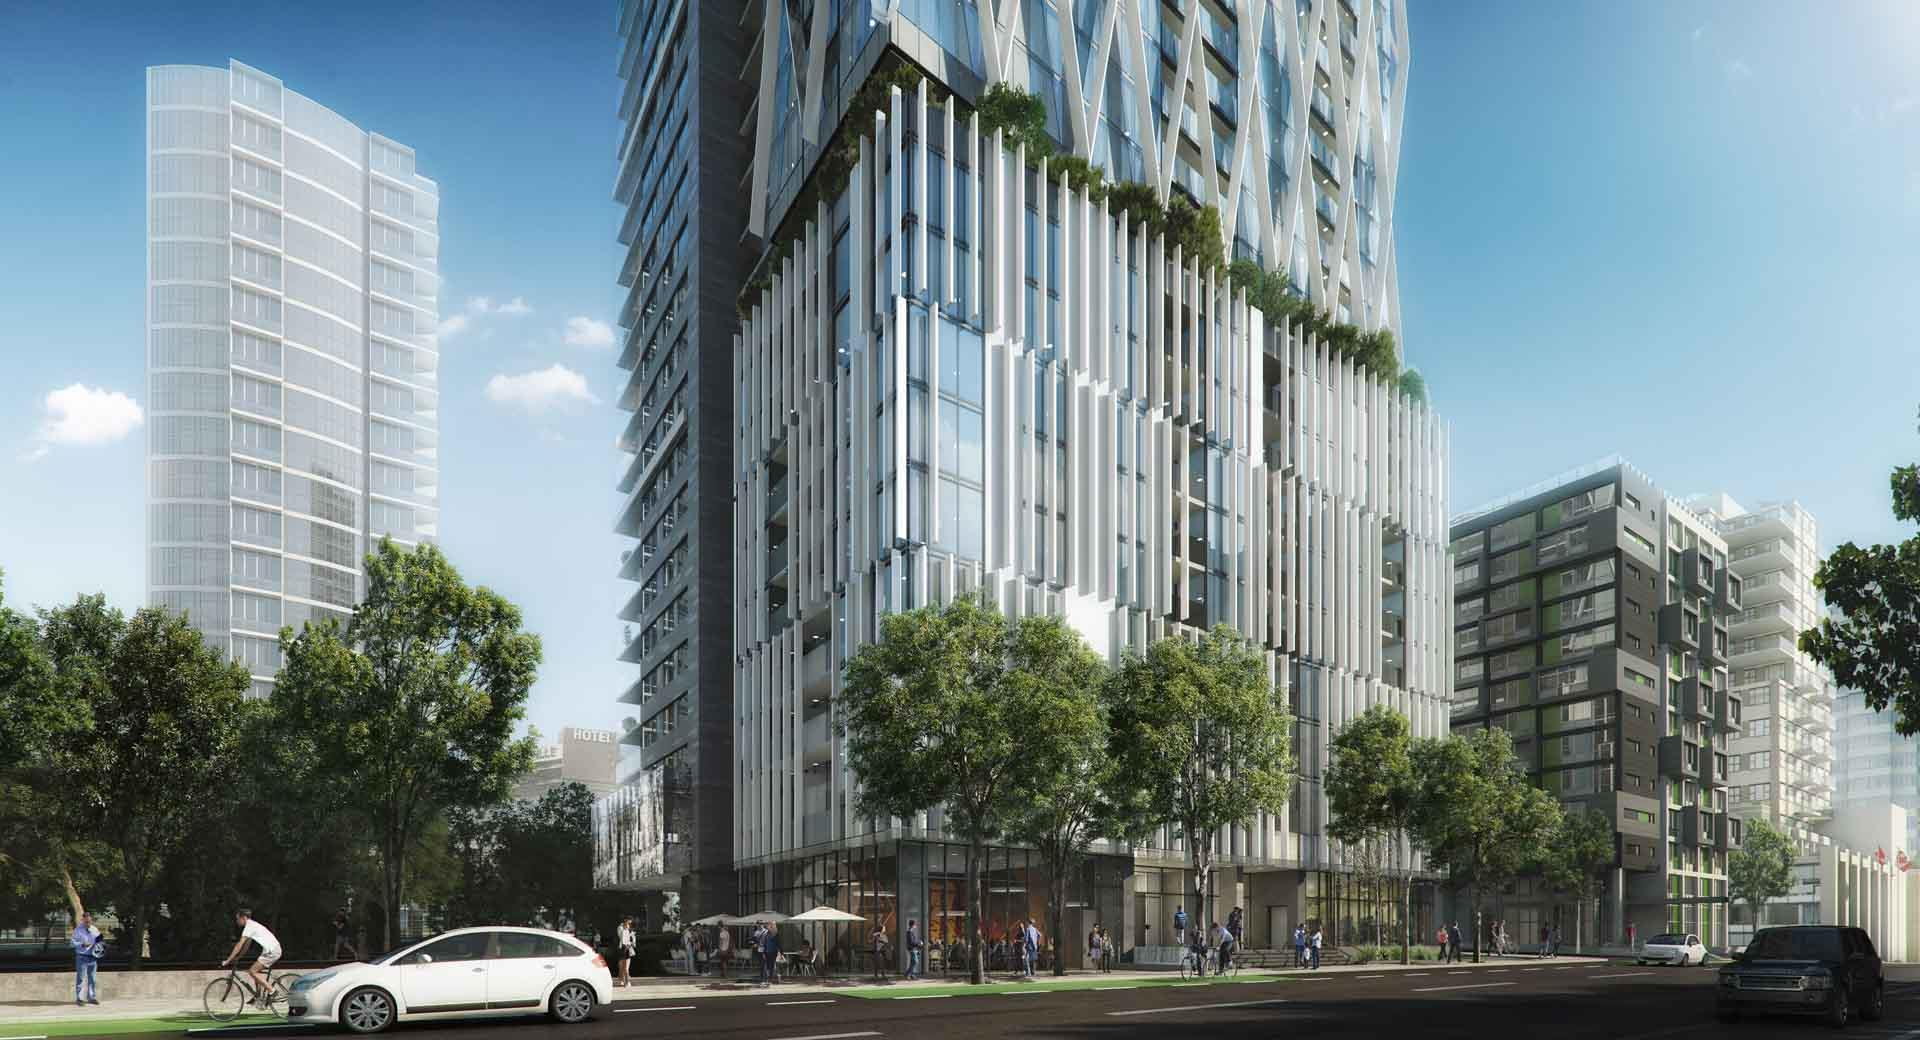 2016 02 11 02 37 18 brenhill developments 1111 richards vancouver yaletown rendering 2